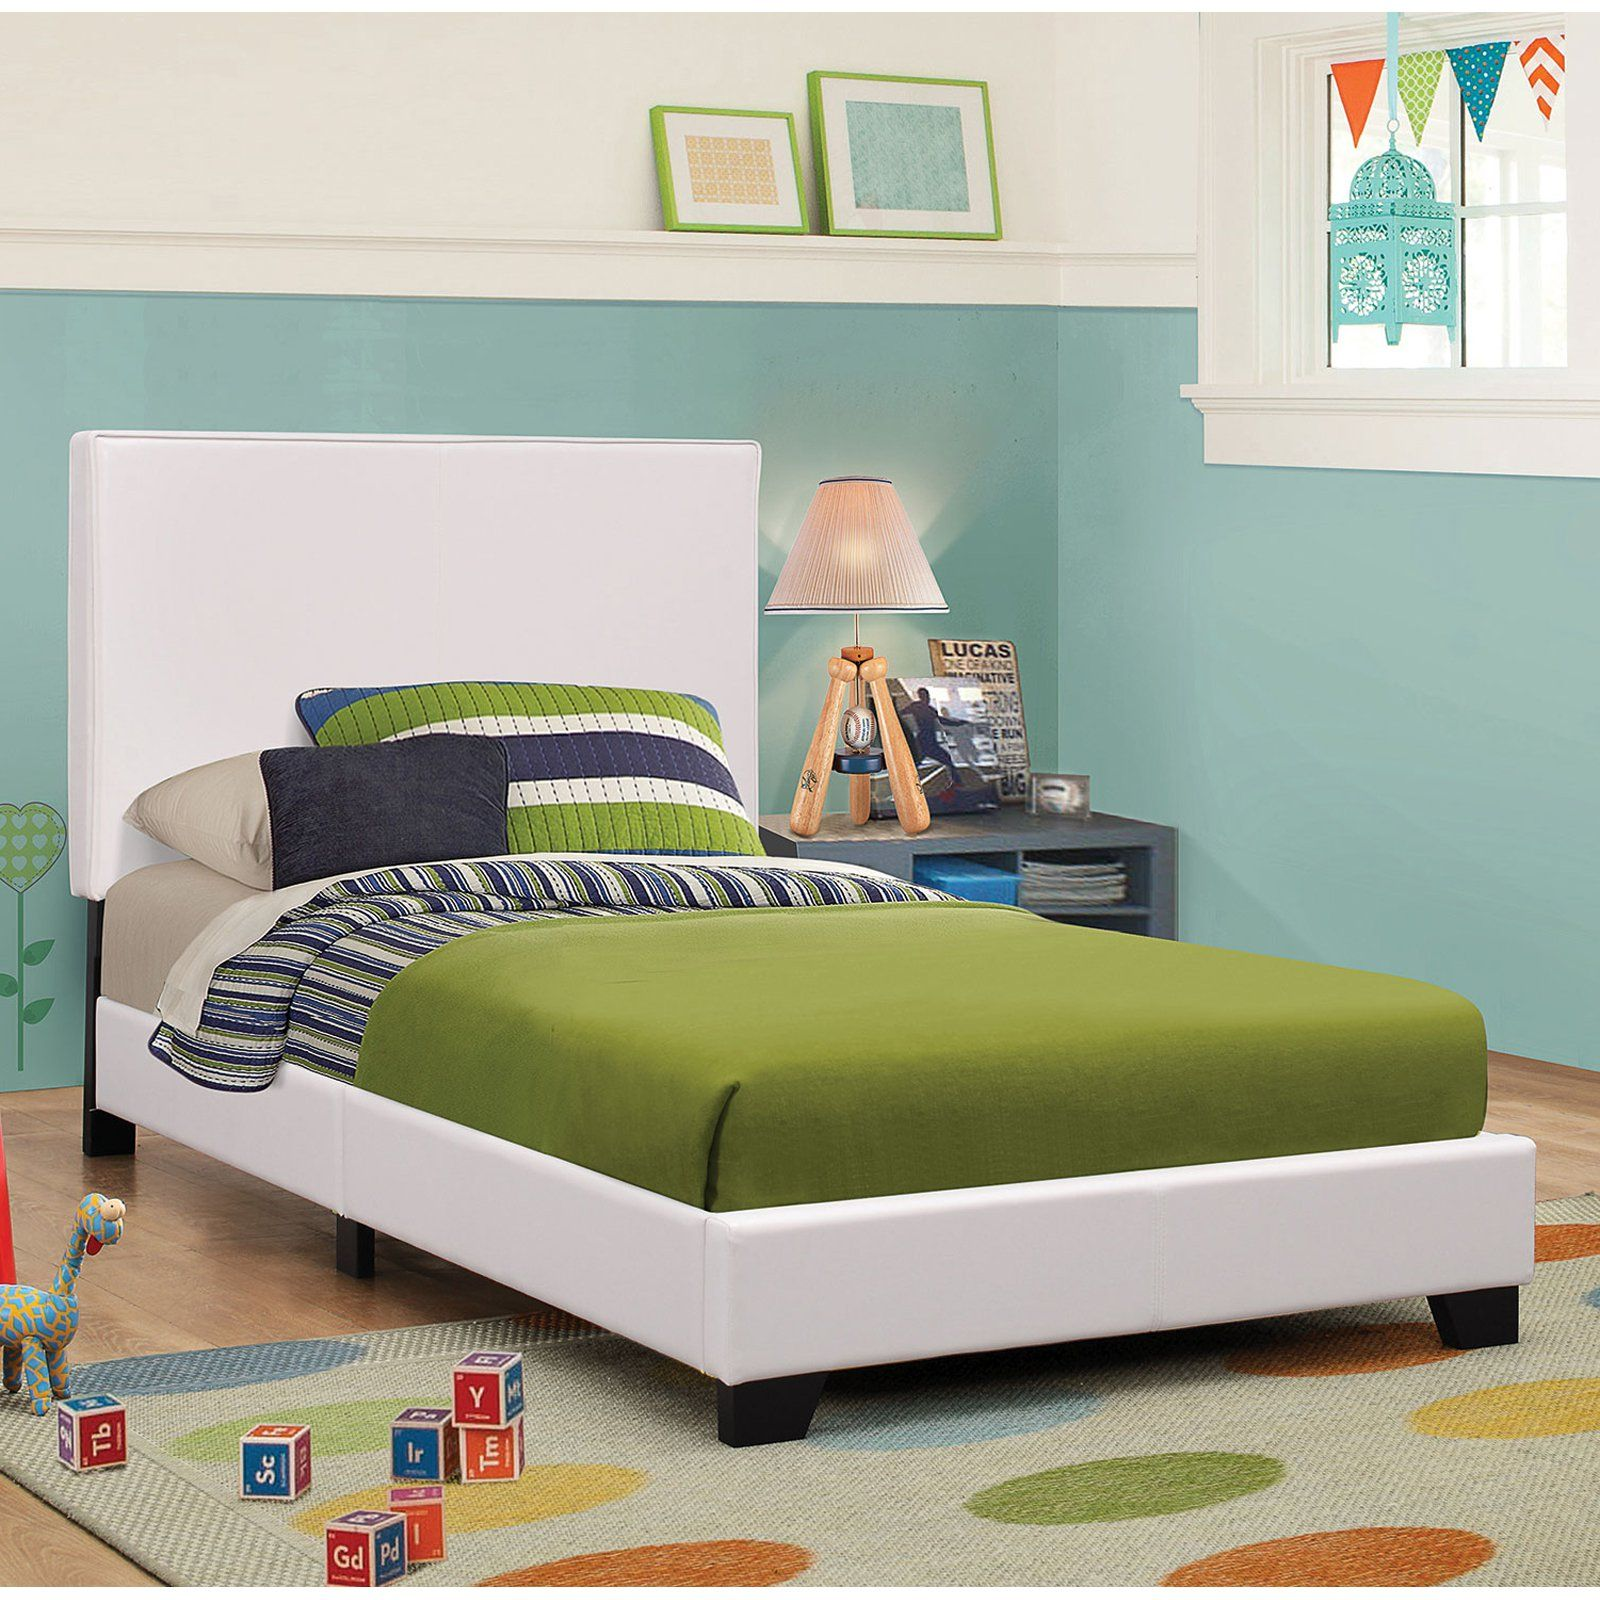 Coaster Furniture Upholstered LowProfile Bed, Size Full